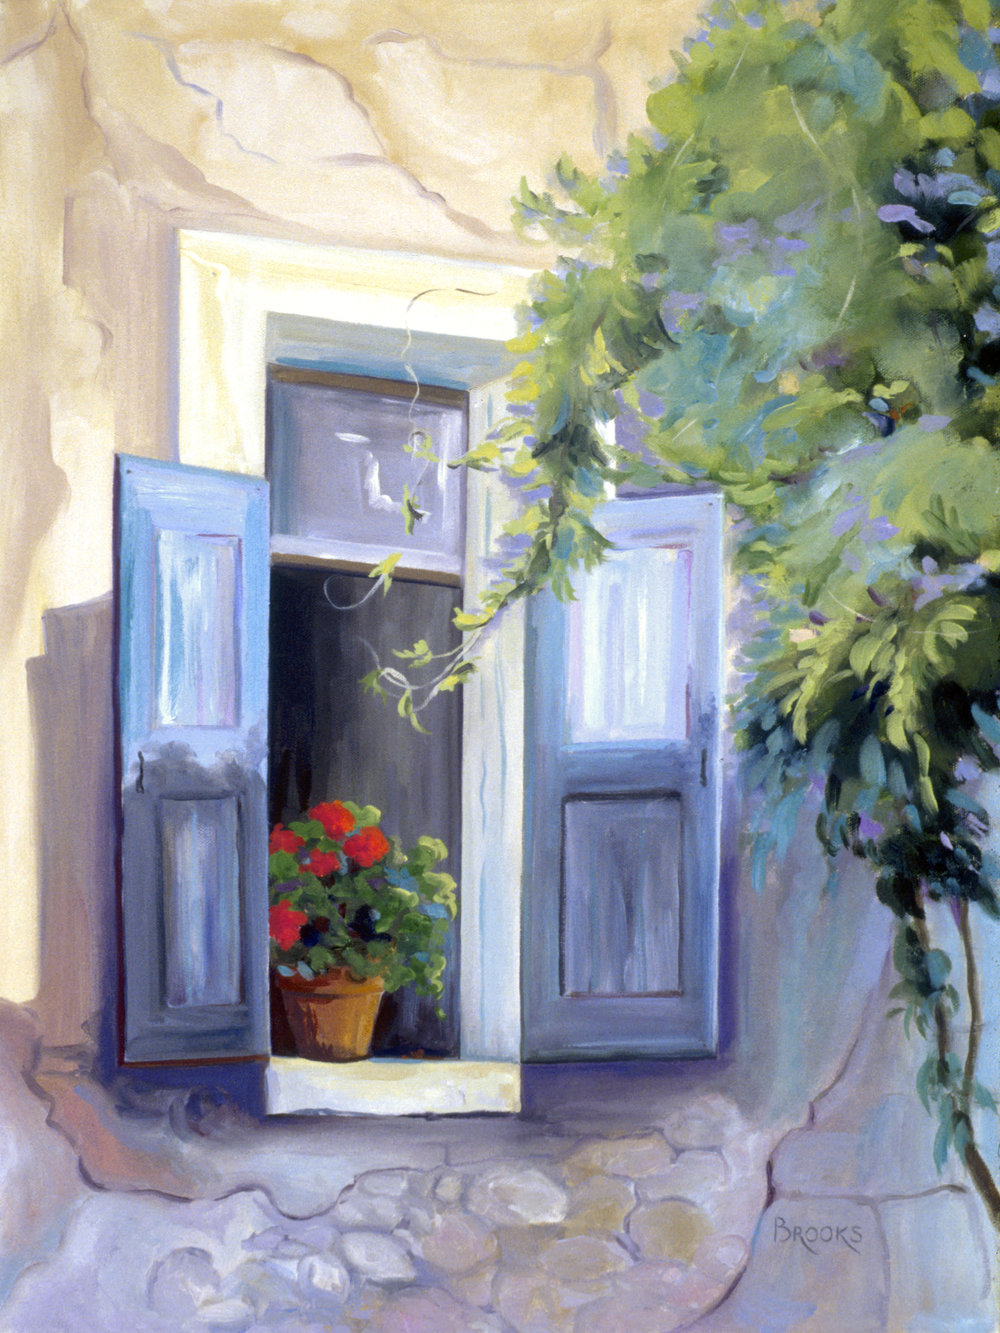 WINDOW GARDEN VIRGINIA BROOKS.jpg